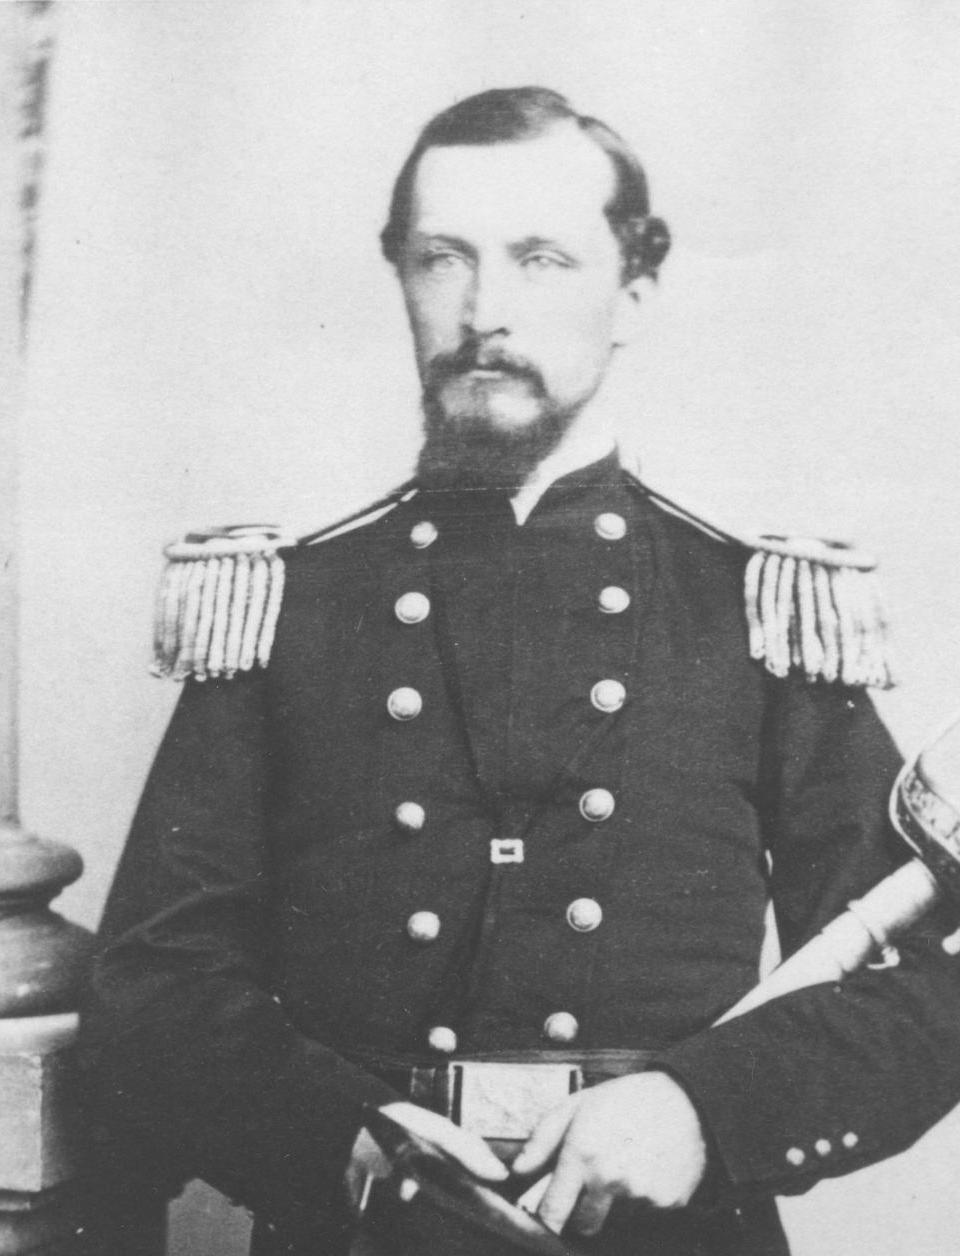 Despite previous battle wounds that severely restricted his use of both arms, Brig. Gen. Isaac J. Wistar commanded Union forces at Yorktown with an energetic hand, including a forceful October 1863 raid of Mathews County in search of Confederate privateers.